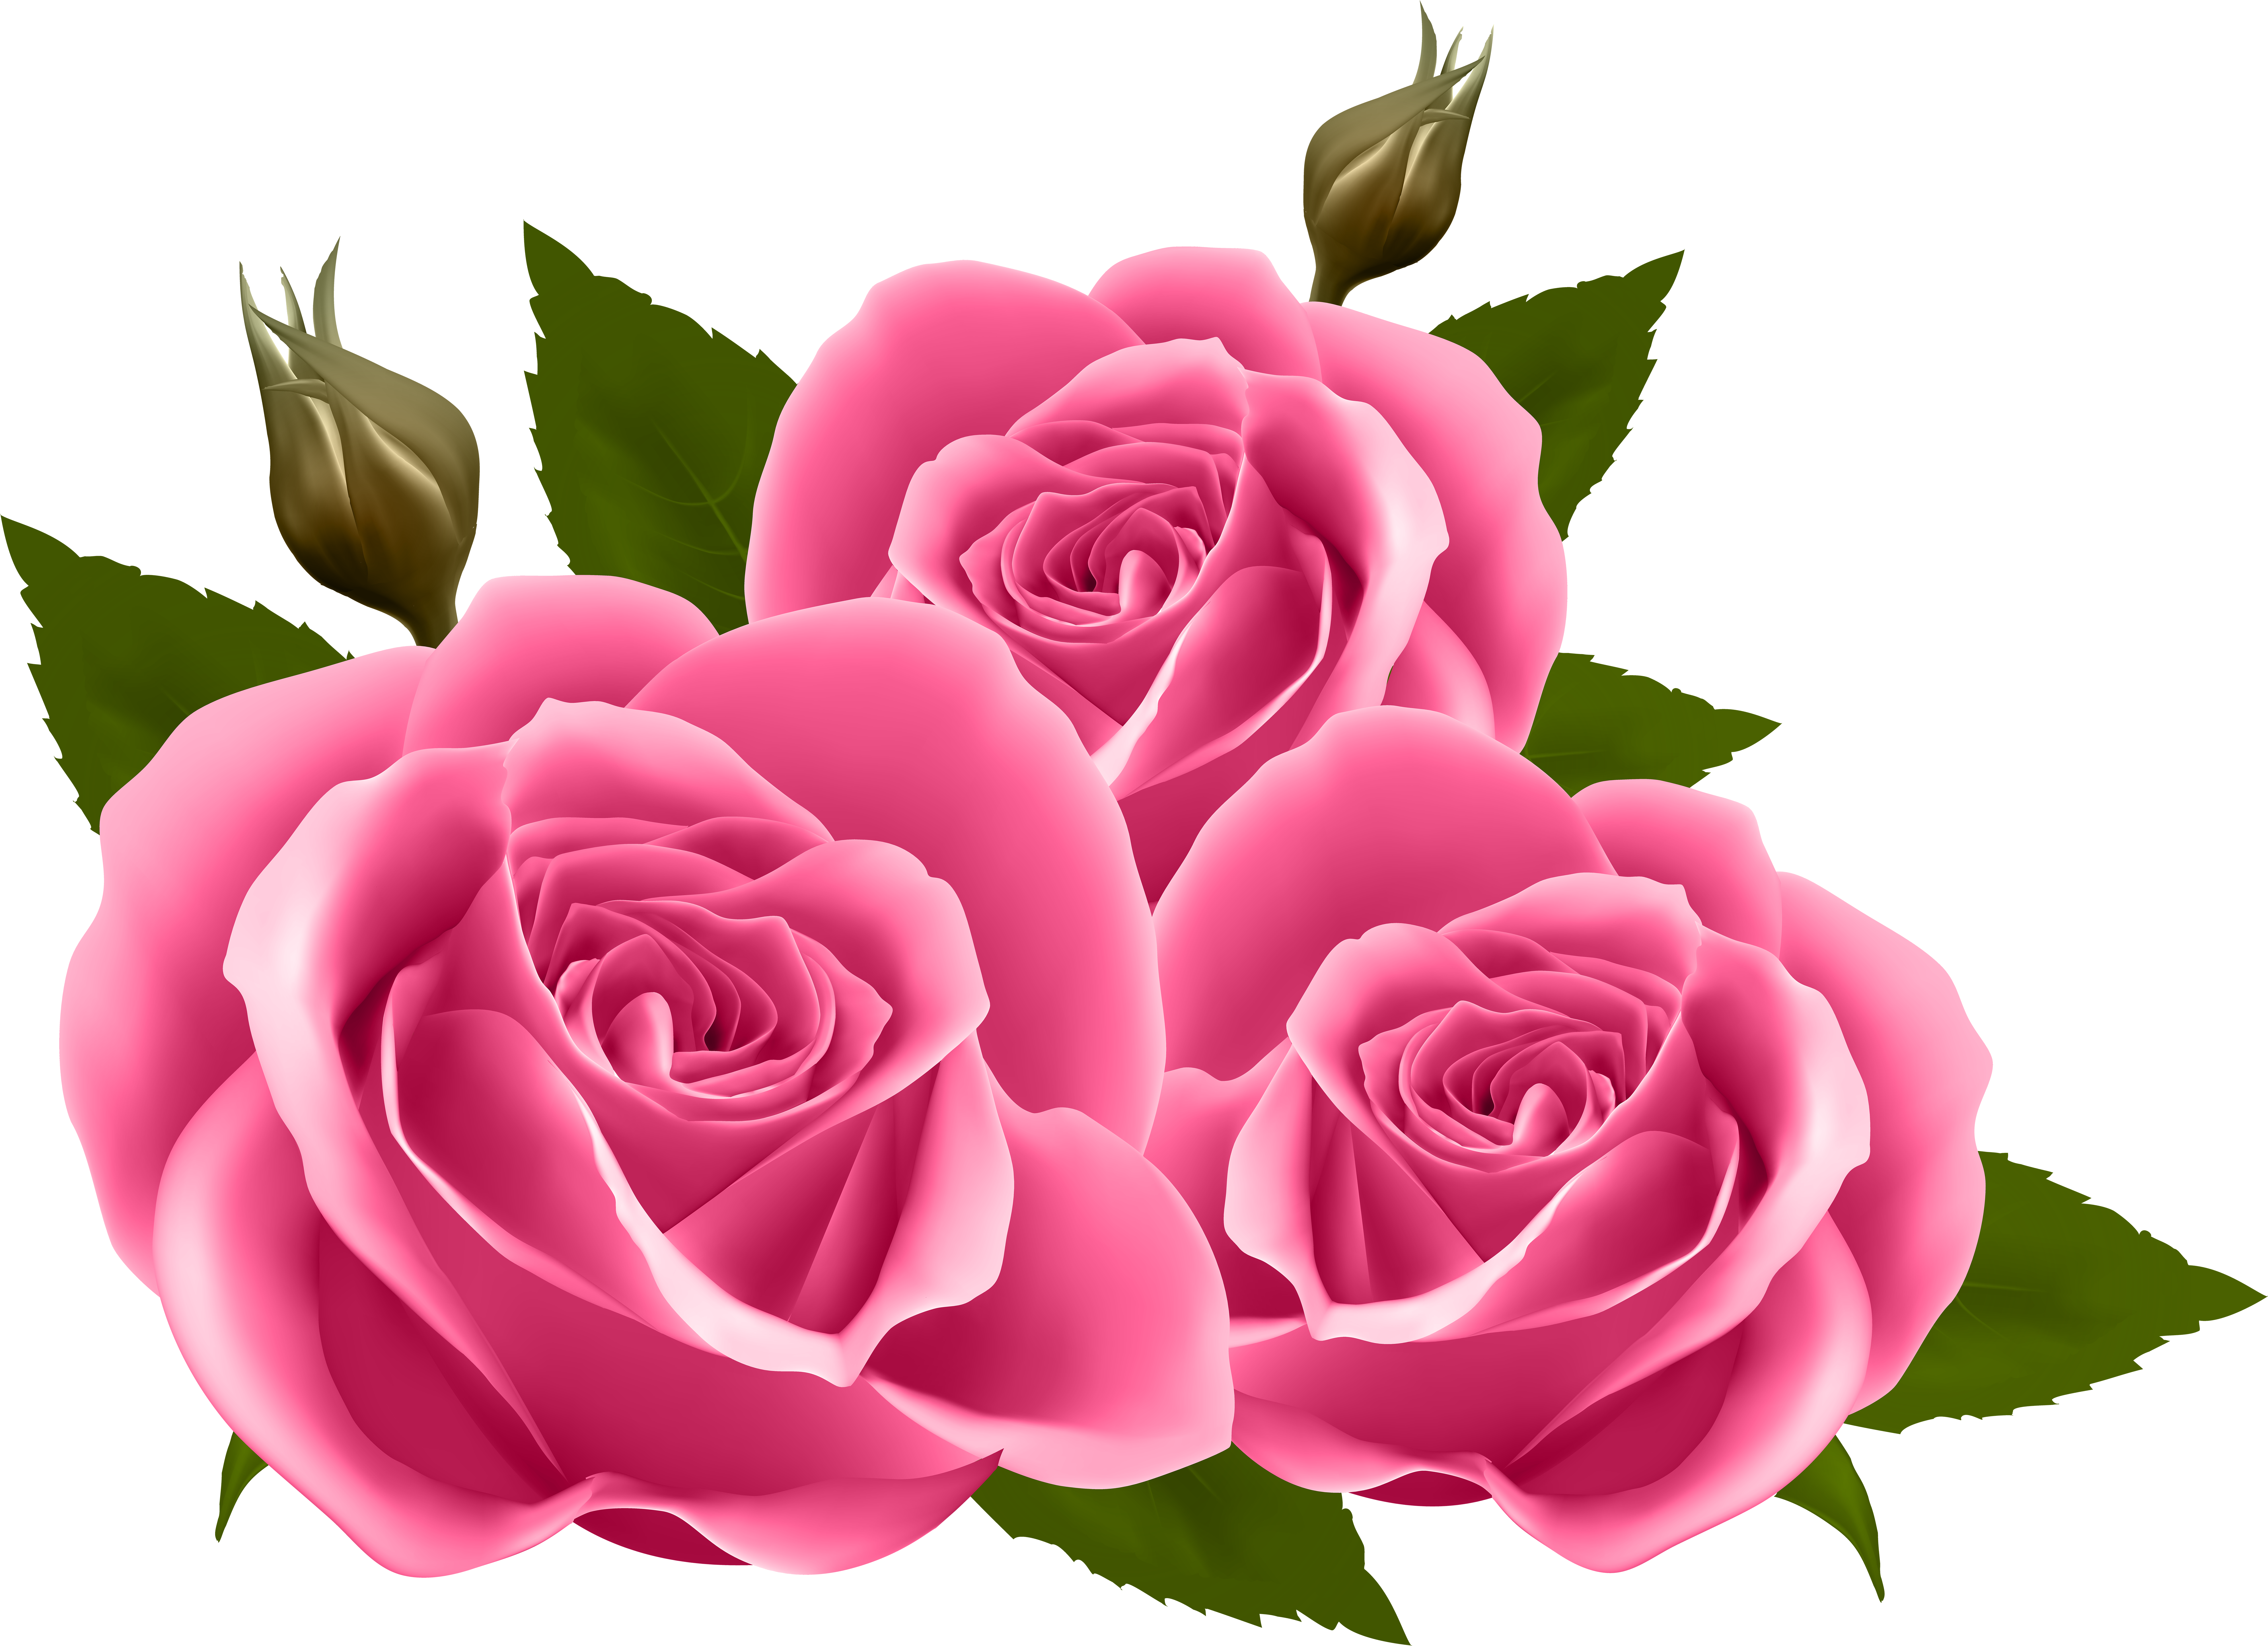 Hd pink images png. Clipart roses garden rose